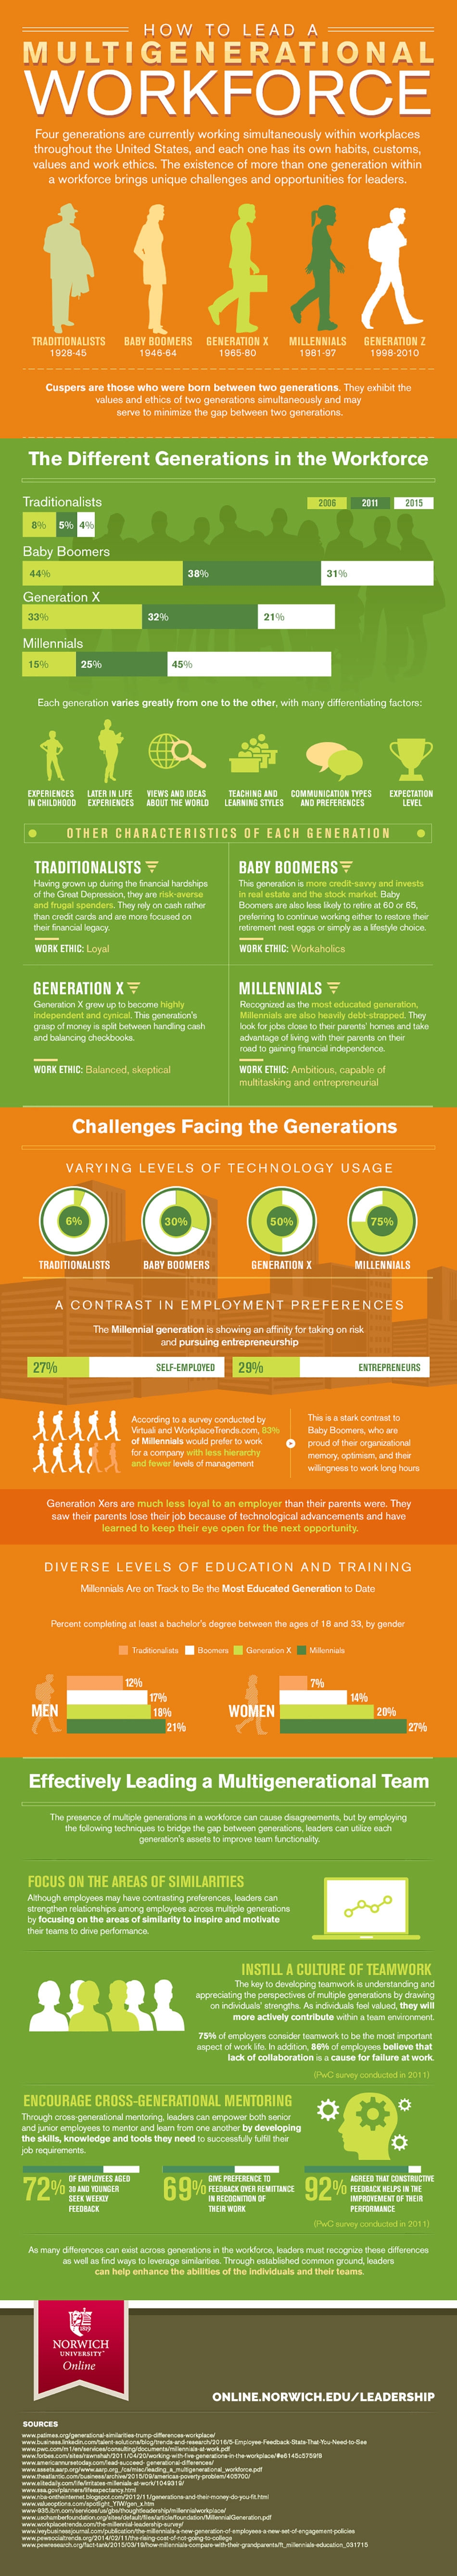 leading with generational differences infographic image